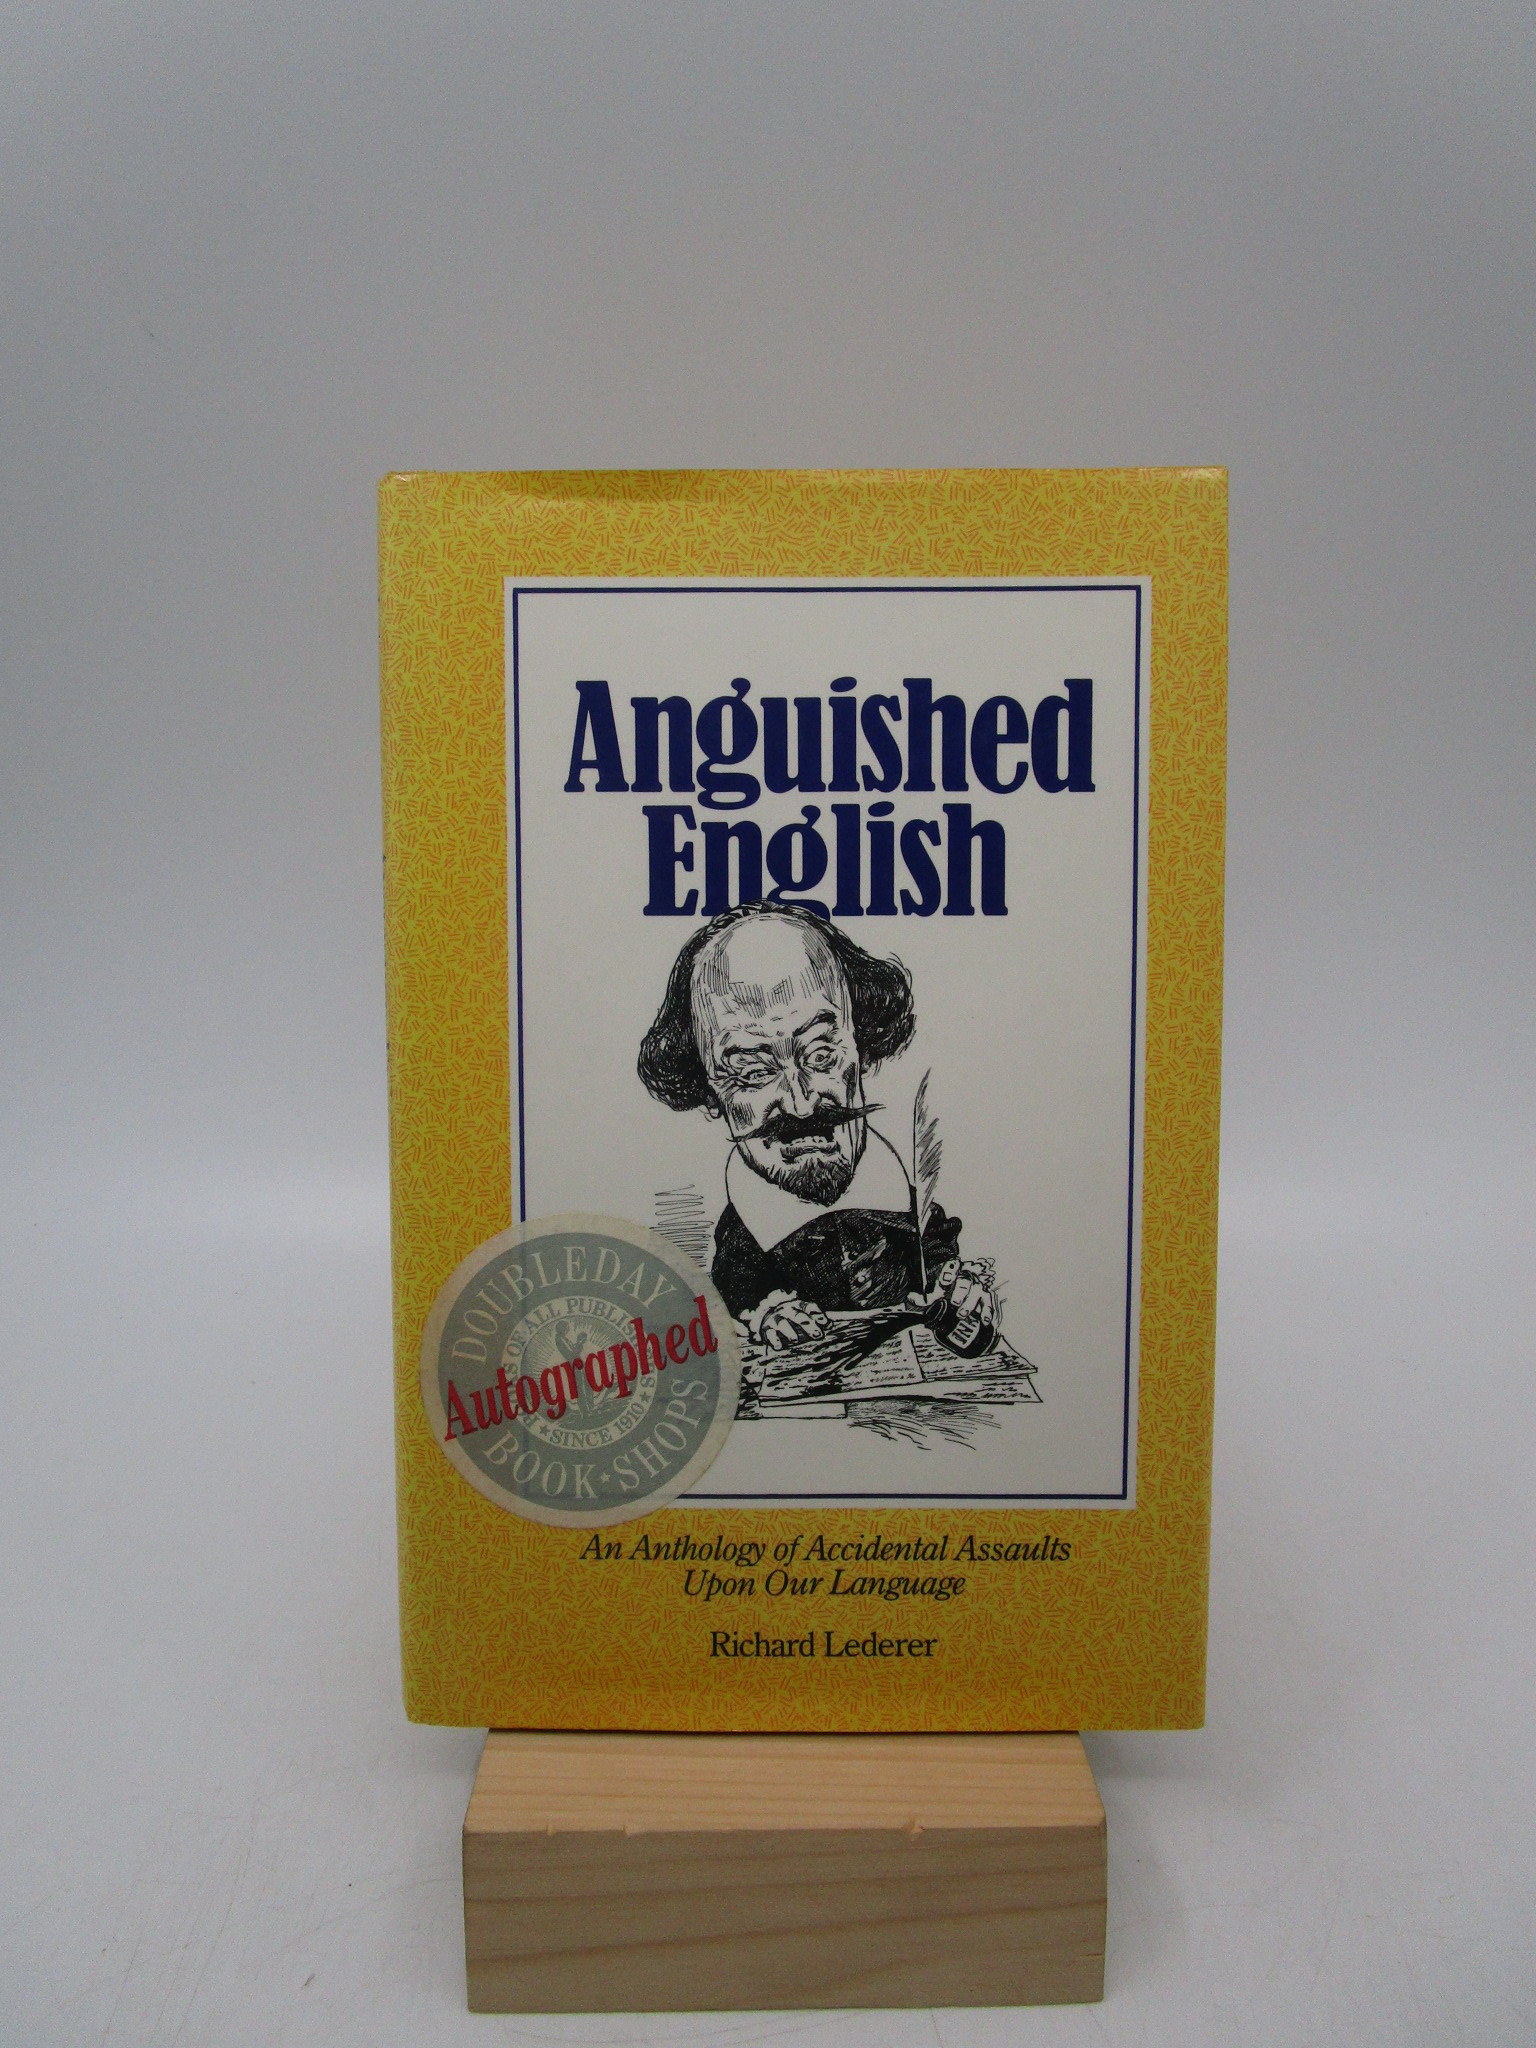 Image for Anguished English: An Anthology of Accidental Assaults upon Our Language (SIGNED)